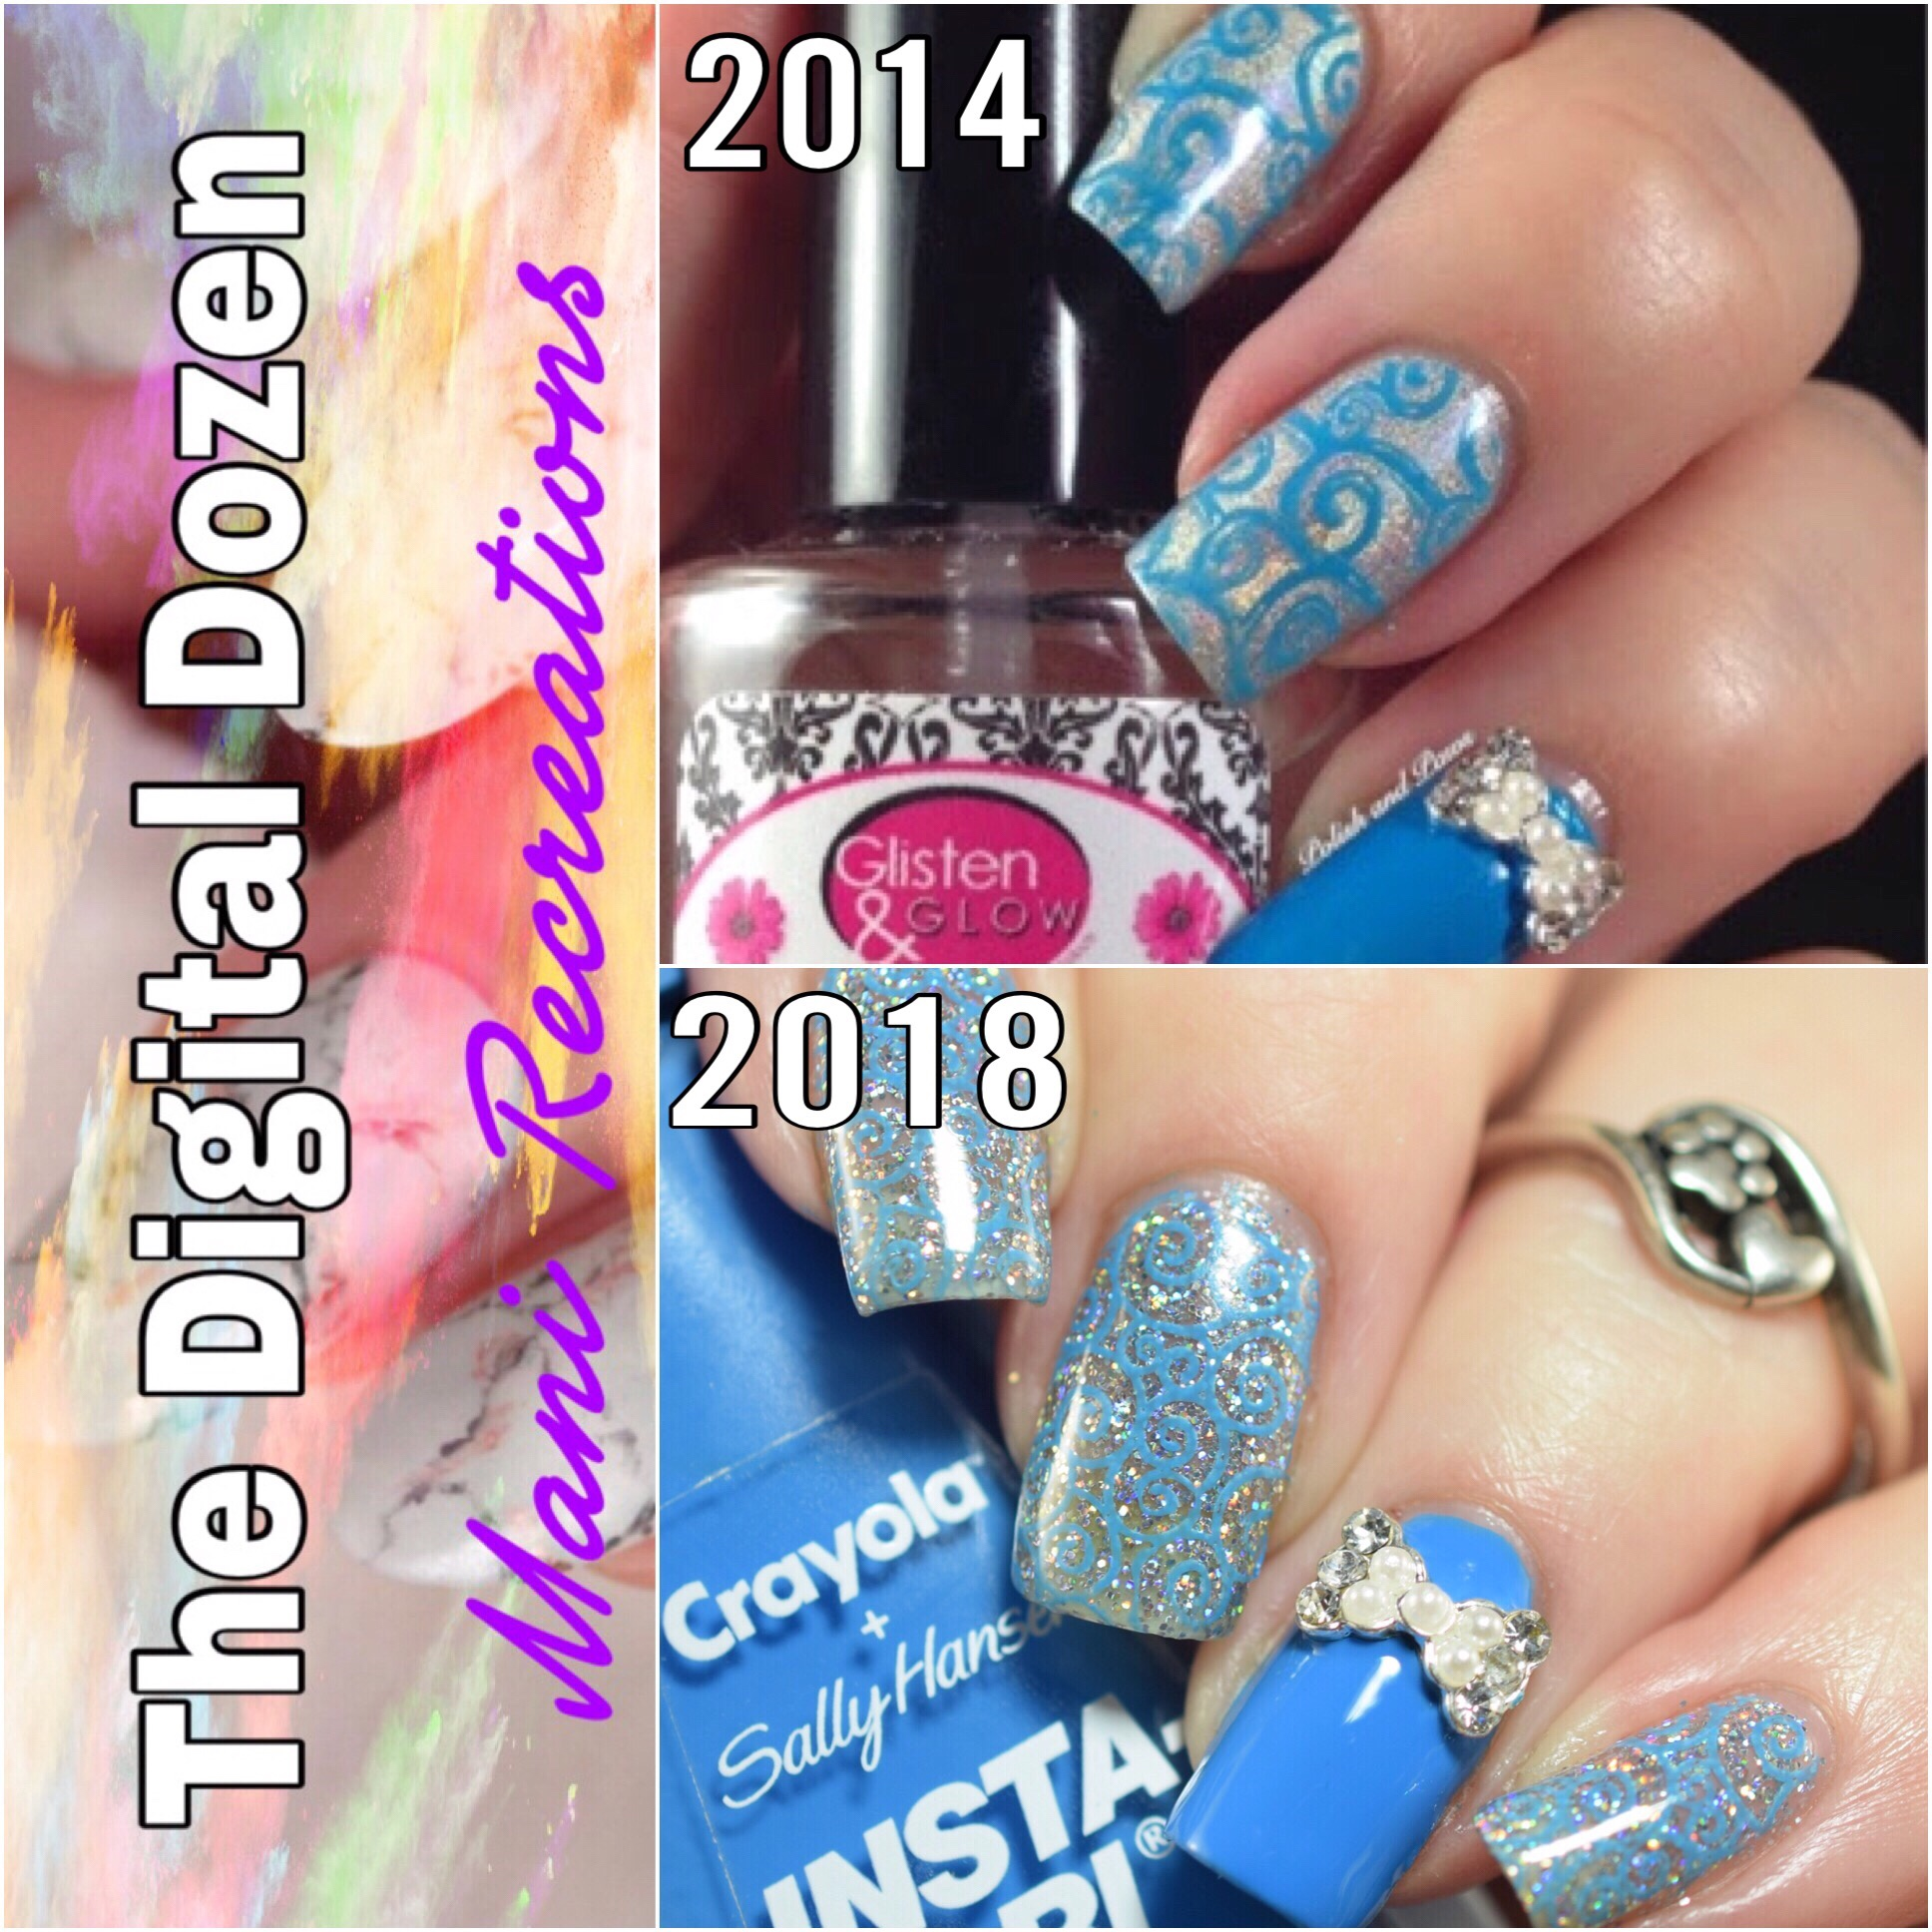 The Digital Dozen Does Mani Recreations Blue Bow Tie Polish And Paws